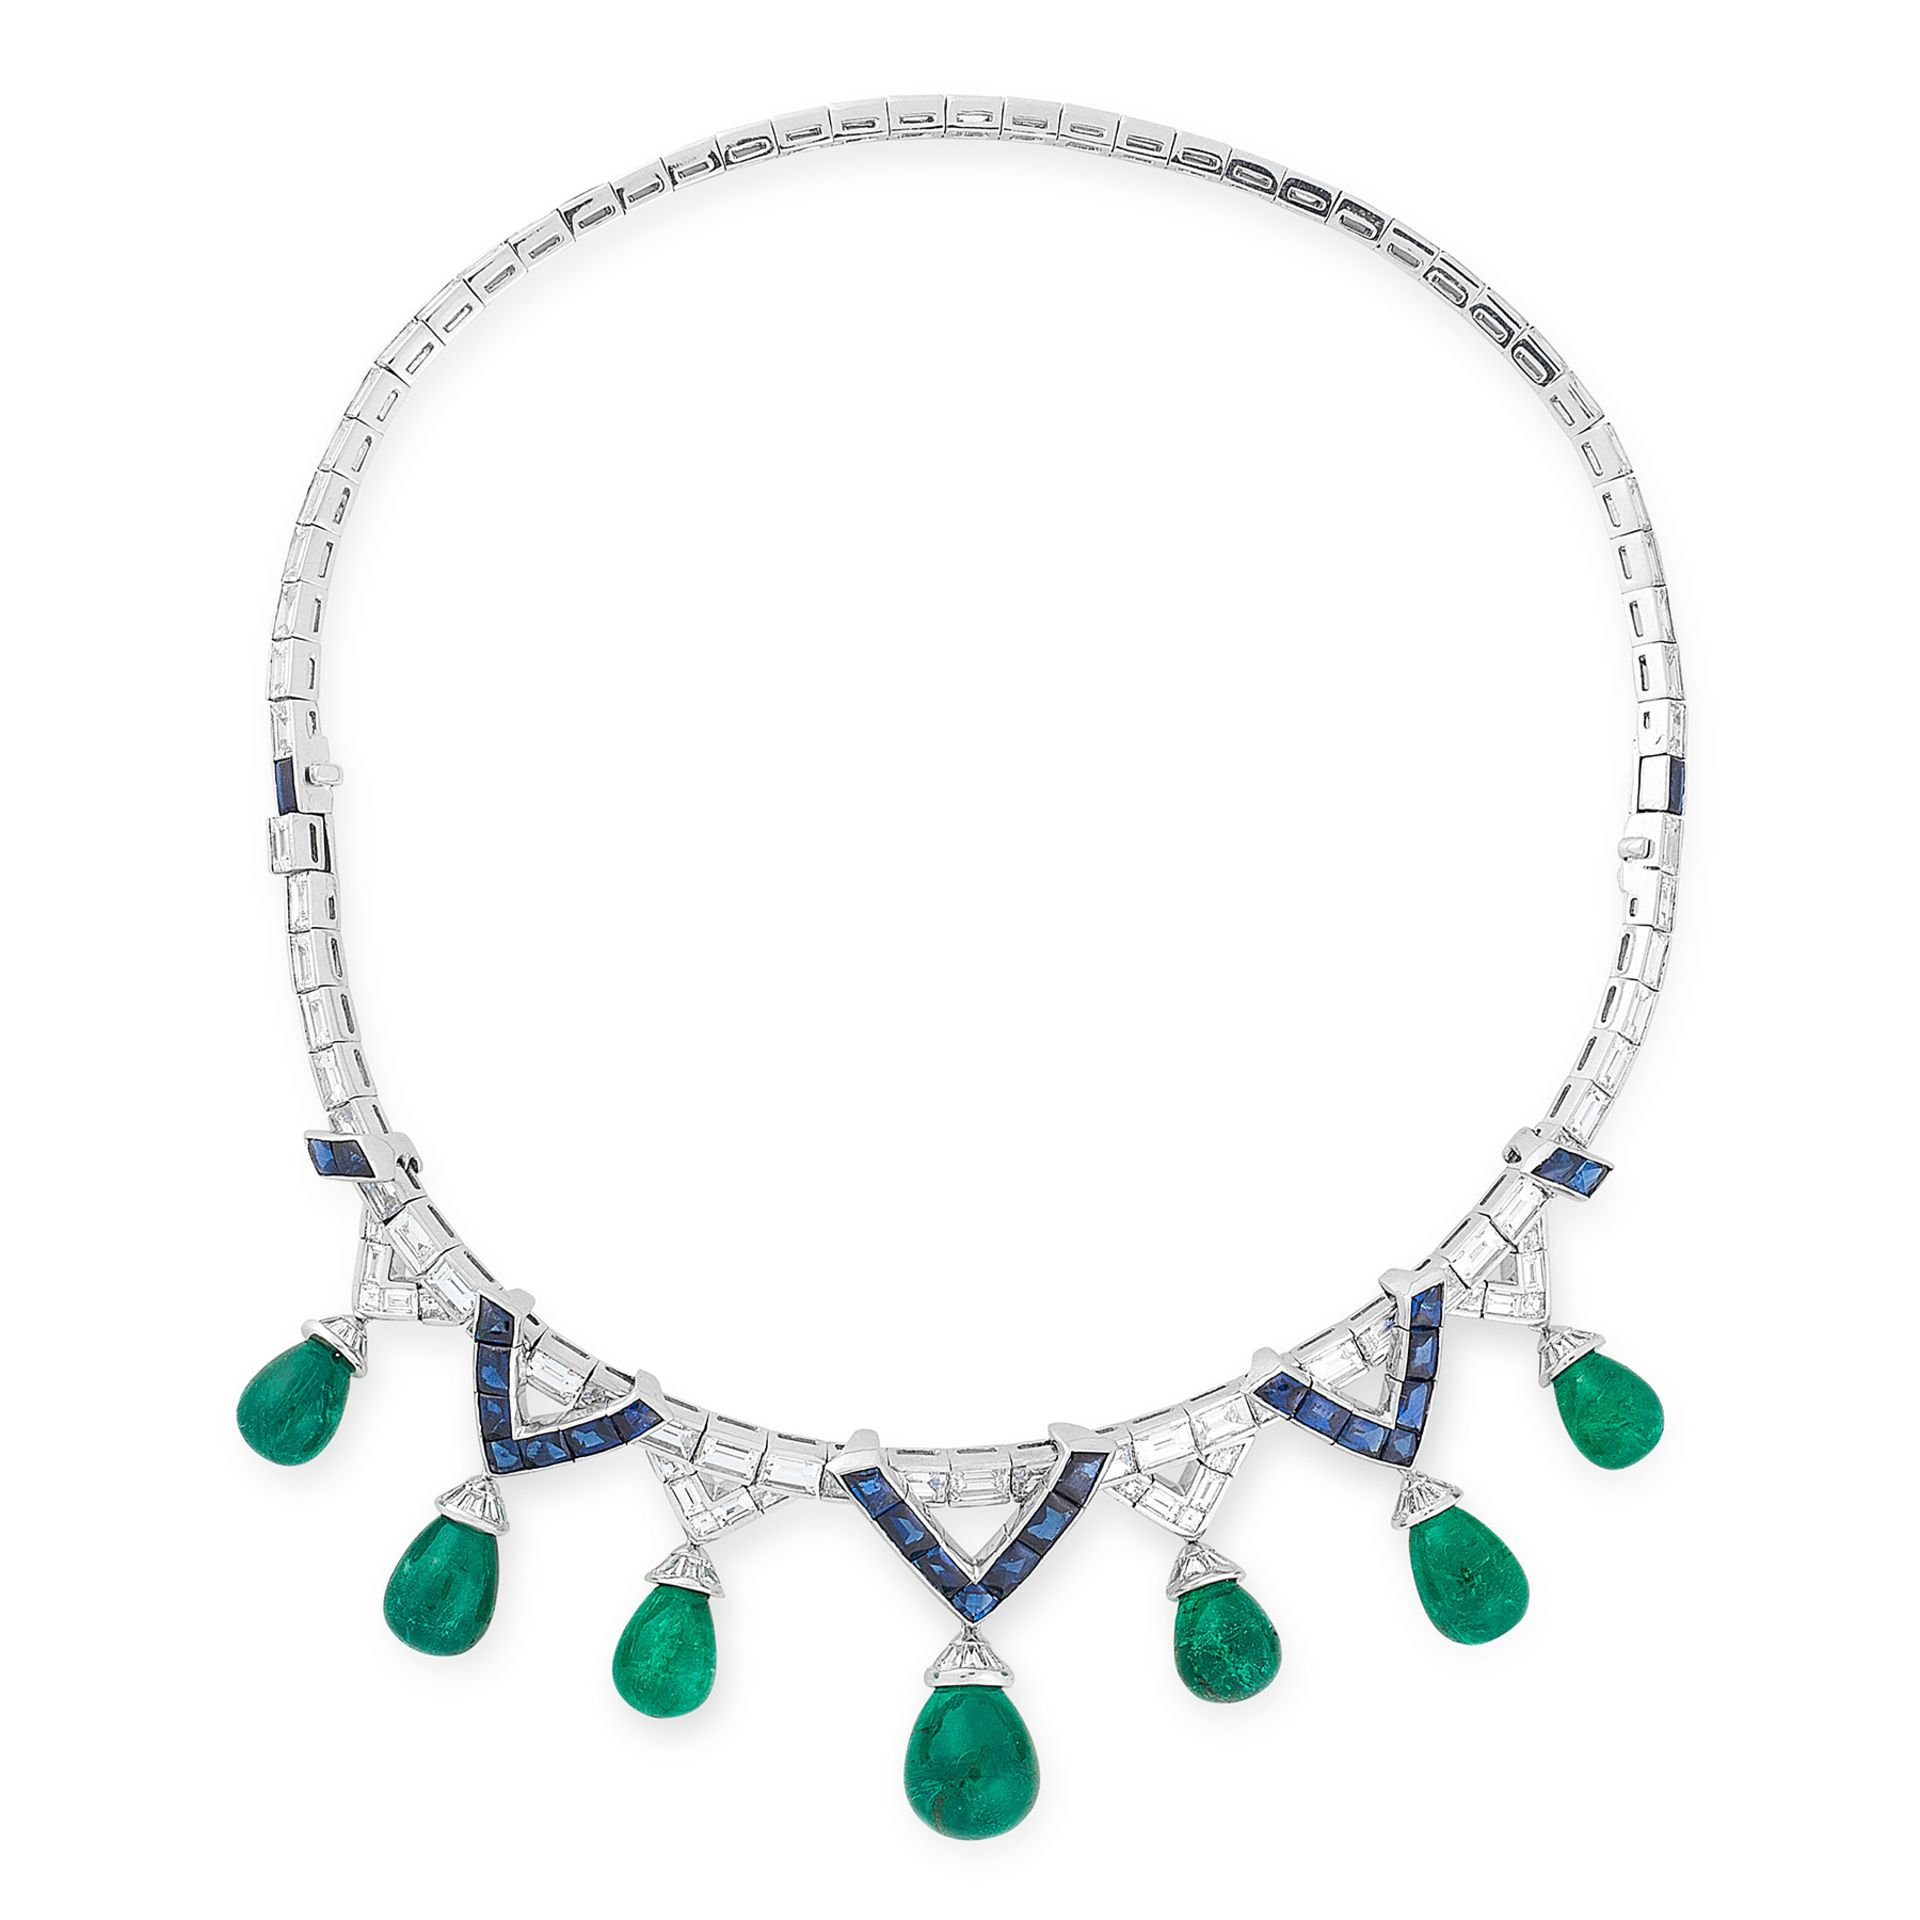 Los 57 - AN EMERALD, SAPPHIRE AND DIAMOND NECKLACE, MICHELE DELLA VALLE comprising a row of graduated step